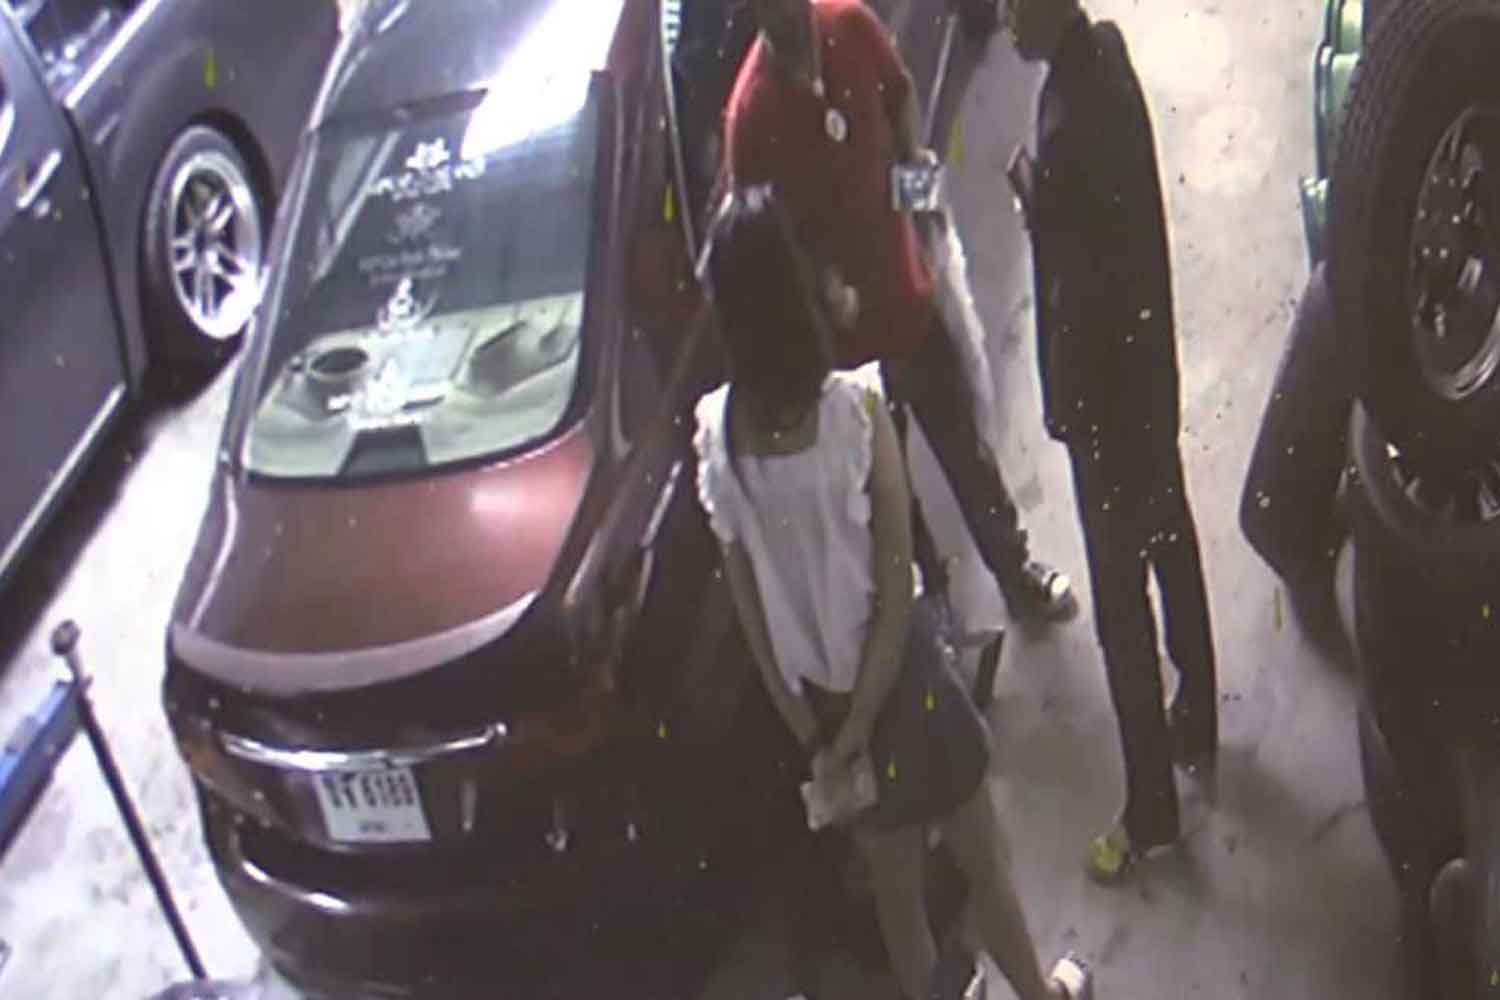 Security camera footage shows the owner of an auto tyre shop in Nakhon Si Thammarat holding cash while talking with men she said claimed to be police officers who demanded money in exchange for sparing the shop from being prosecuted. (Photo supplied)